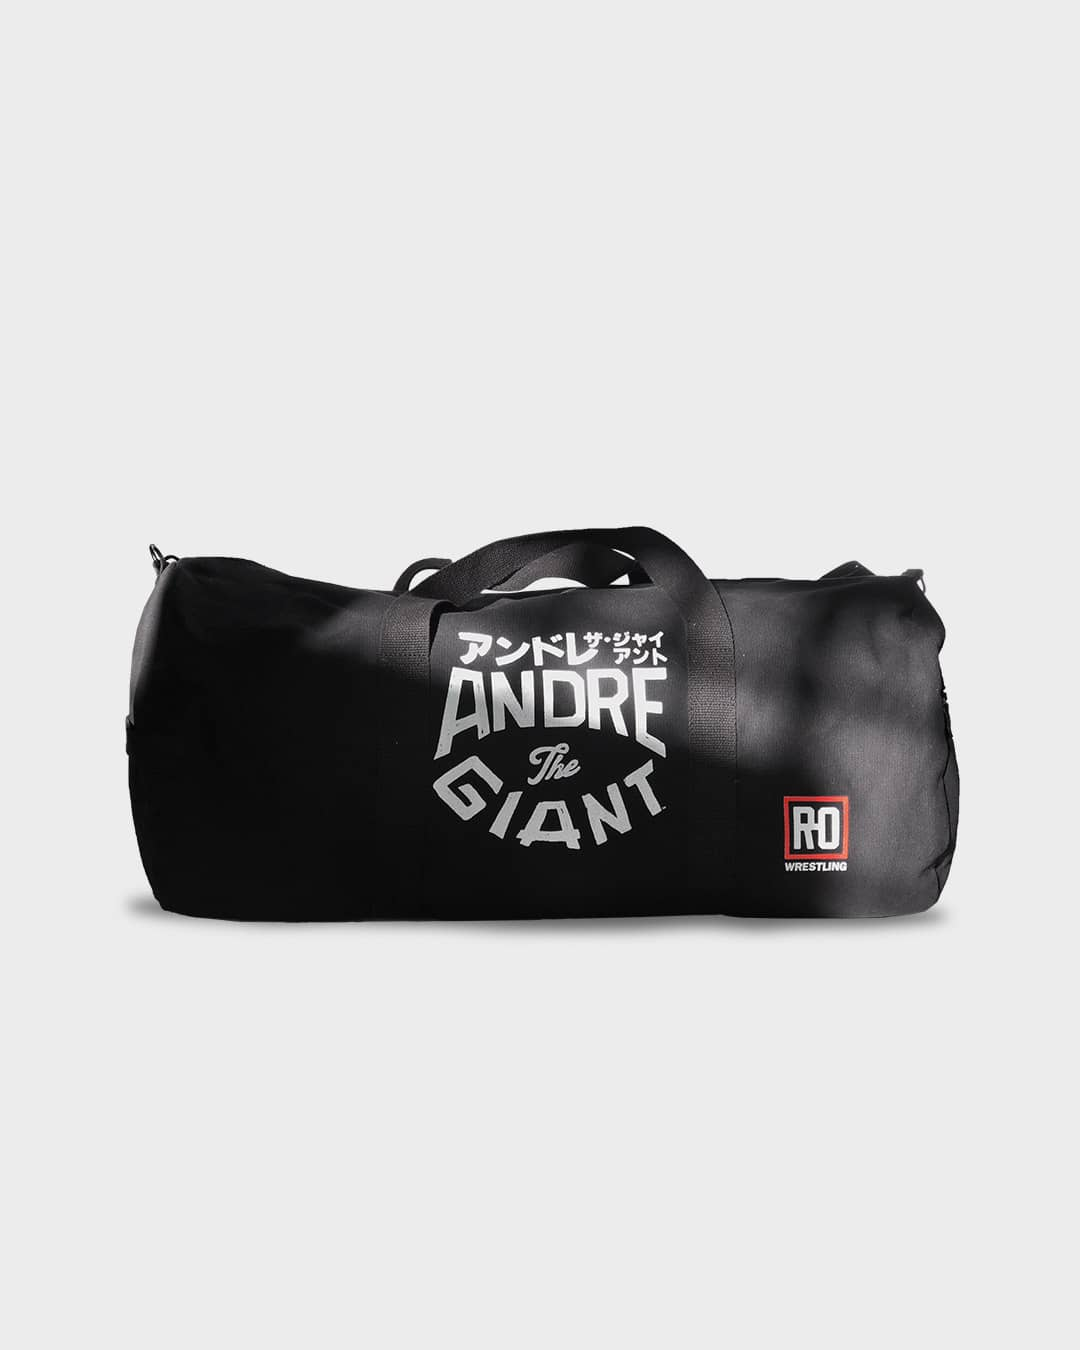 Andre the Giant Gym Bag